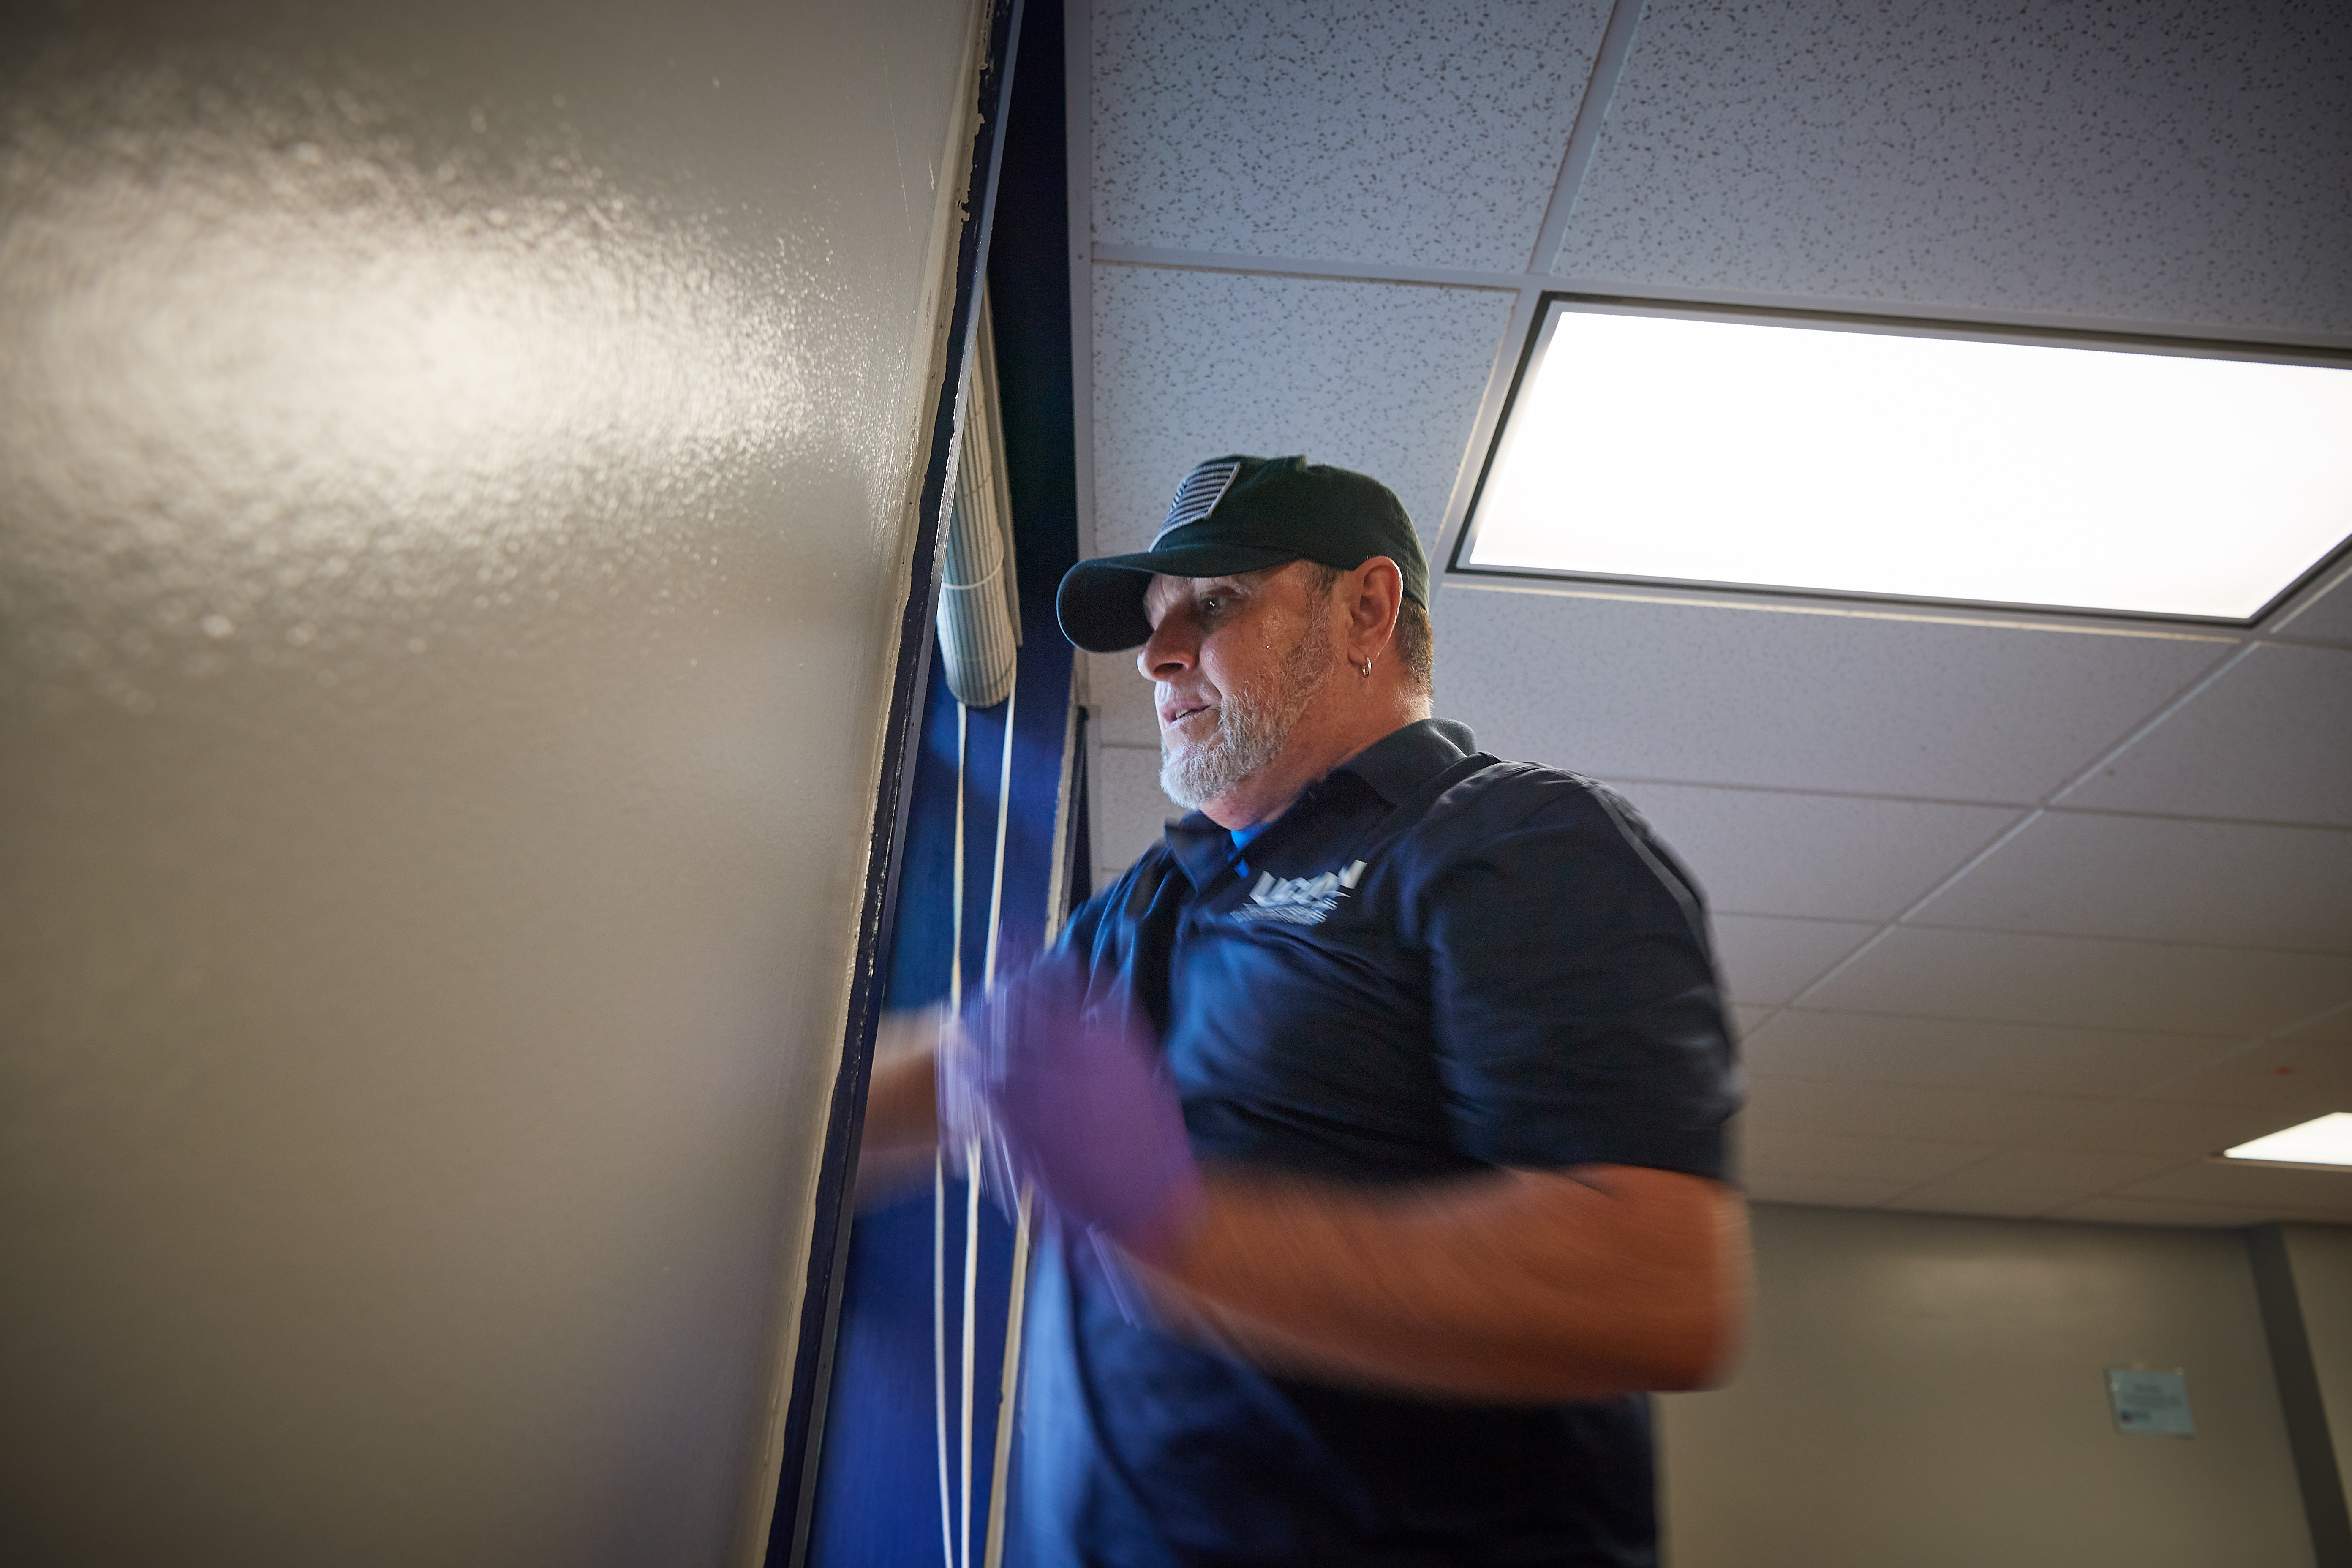 Lesme Valentin, a university custodian, cleans windows in a second floor lounge at Belden Hall onAug. 16, 2018. (Peter Morenus/UConn Photo)